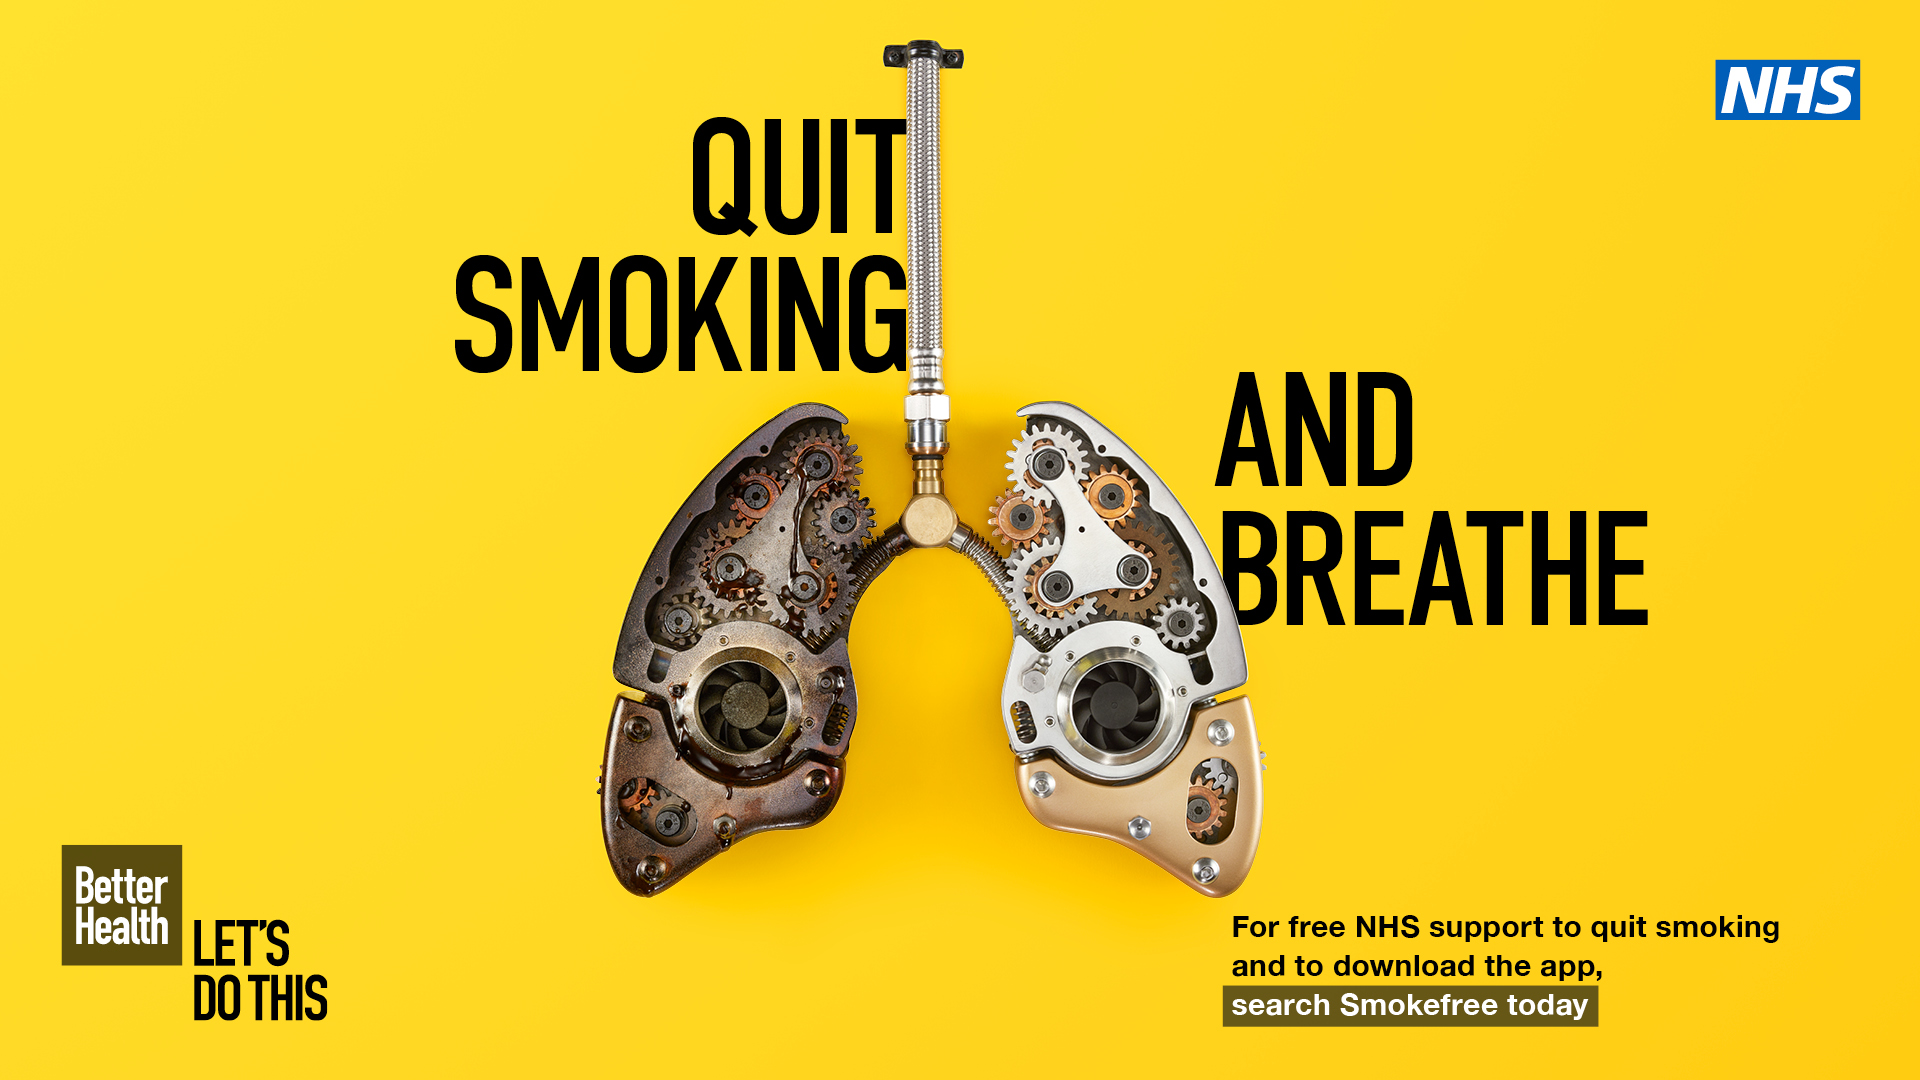 Quit smoking and breathe